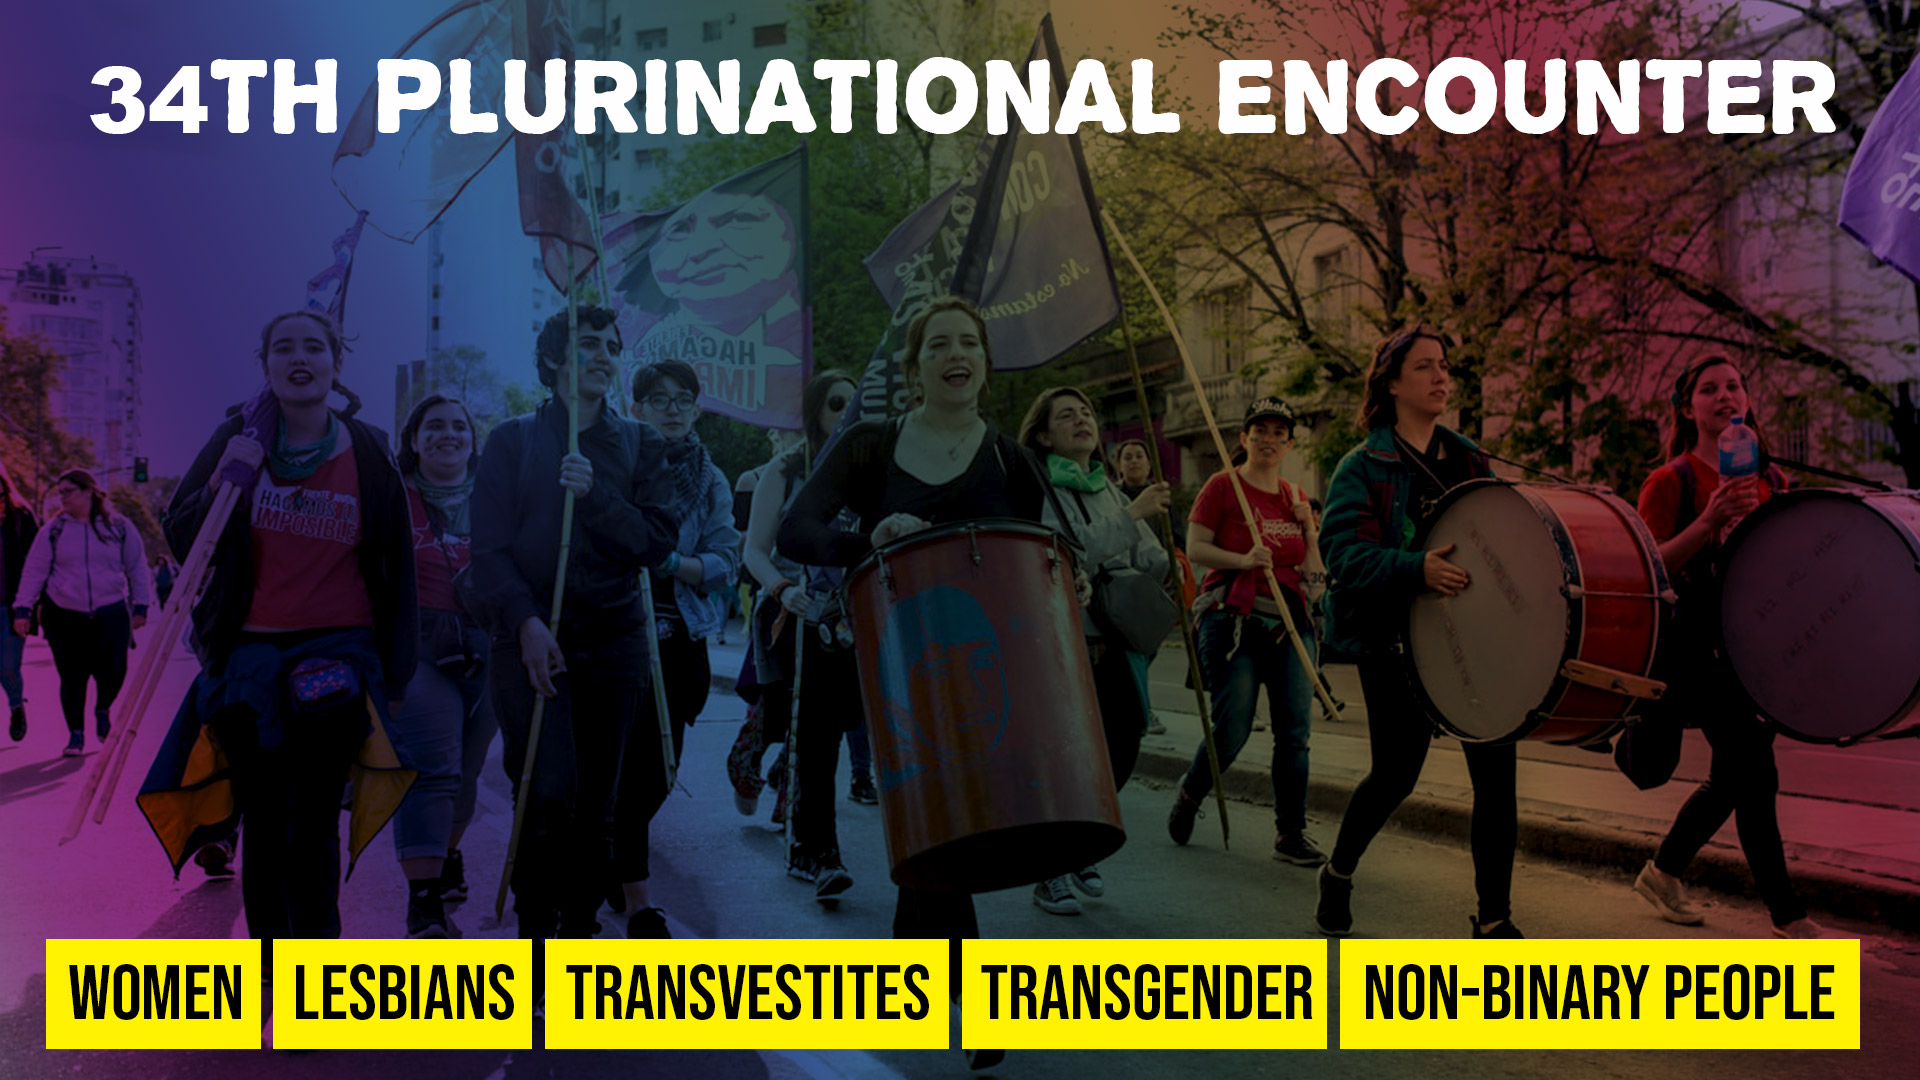 34th Plurinational Encounter of Women, Lesbians, Transvestites, Transgender and Non-binary People